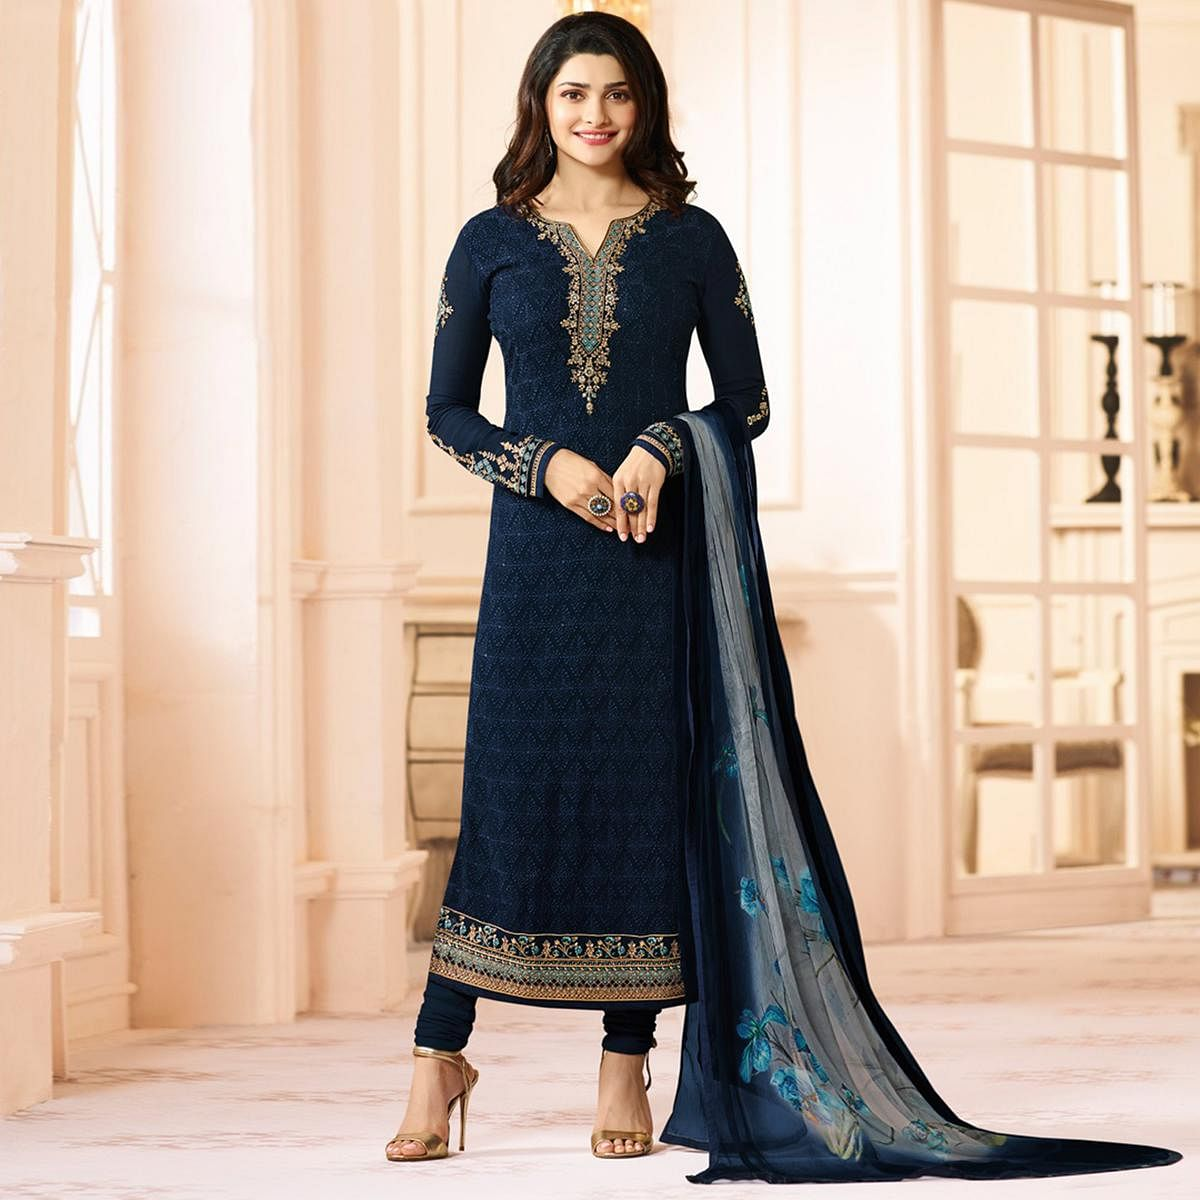 883275baf3 Buy Ravishing Dark Blue Colored Embroidered Party Wear Straight Cut  Georgette Salwar Suit for womens online India, Best Prices, Reviews -  Peachmode